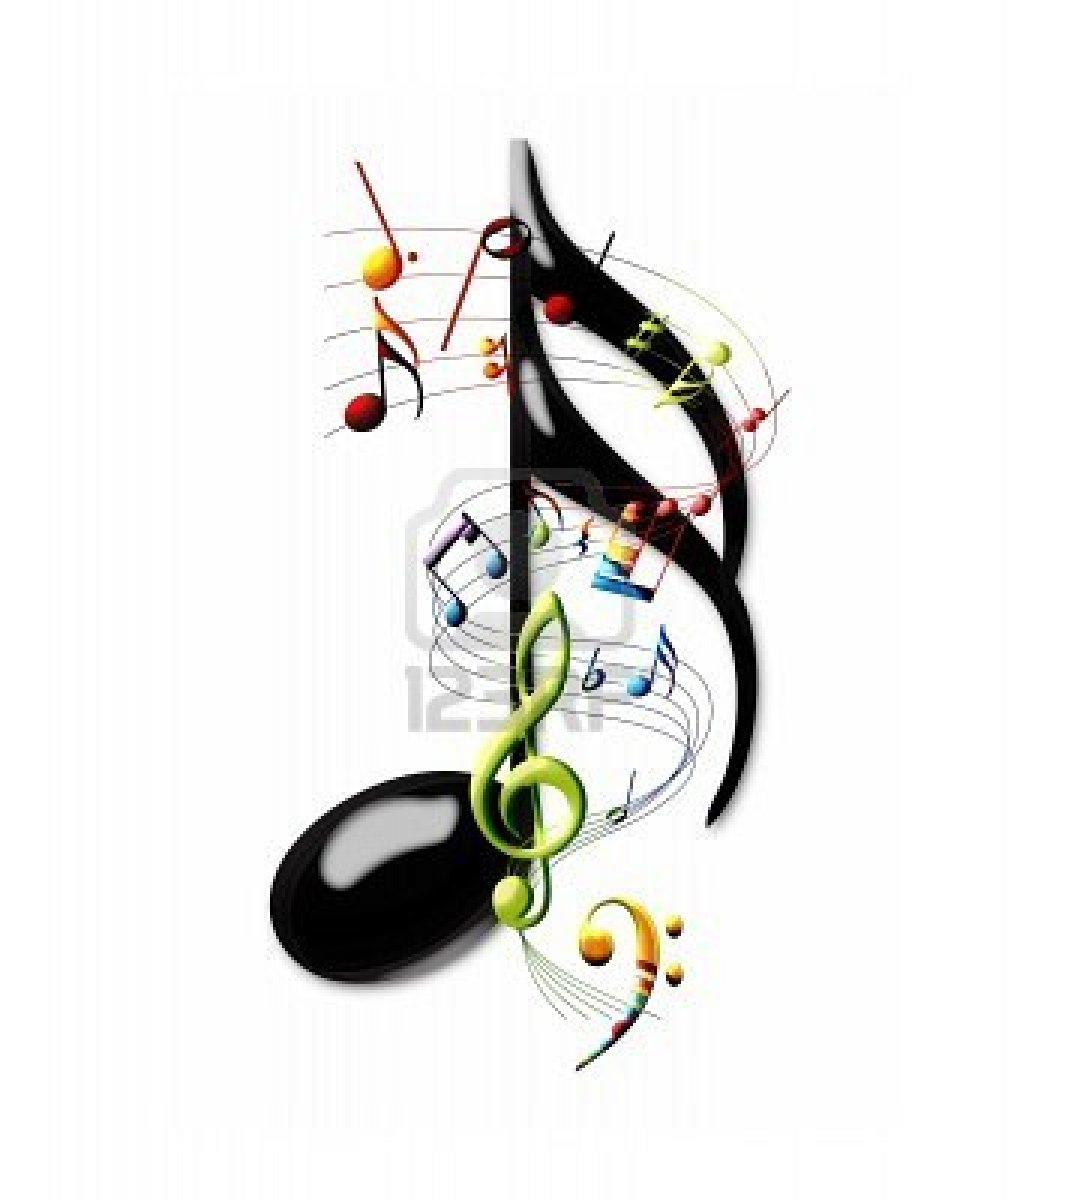 Colorful Music Notes Wallpaper 7573646 Multi Colored Musical Notes And - Music picture 4u colorful single music symbols clipart panda free